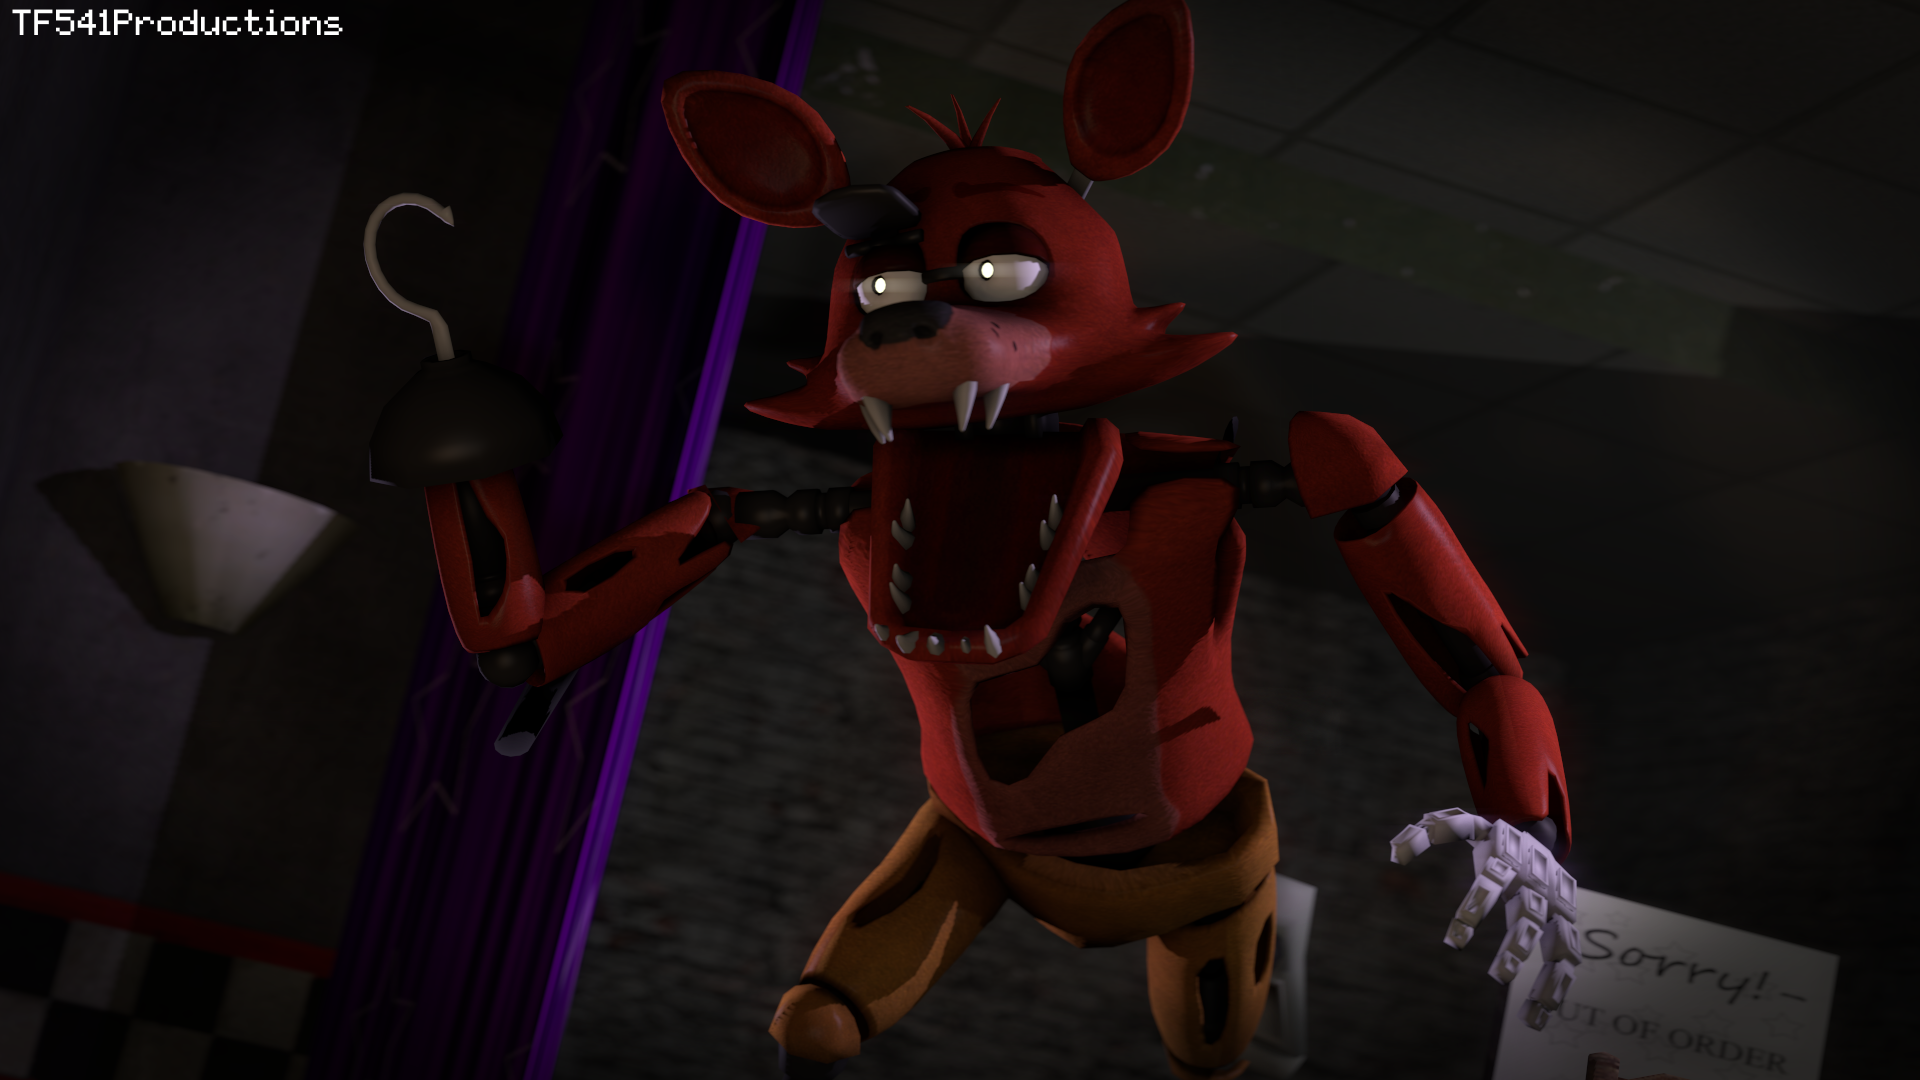 I6NIS Foxy The Pirate by TF541Productions